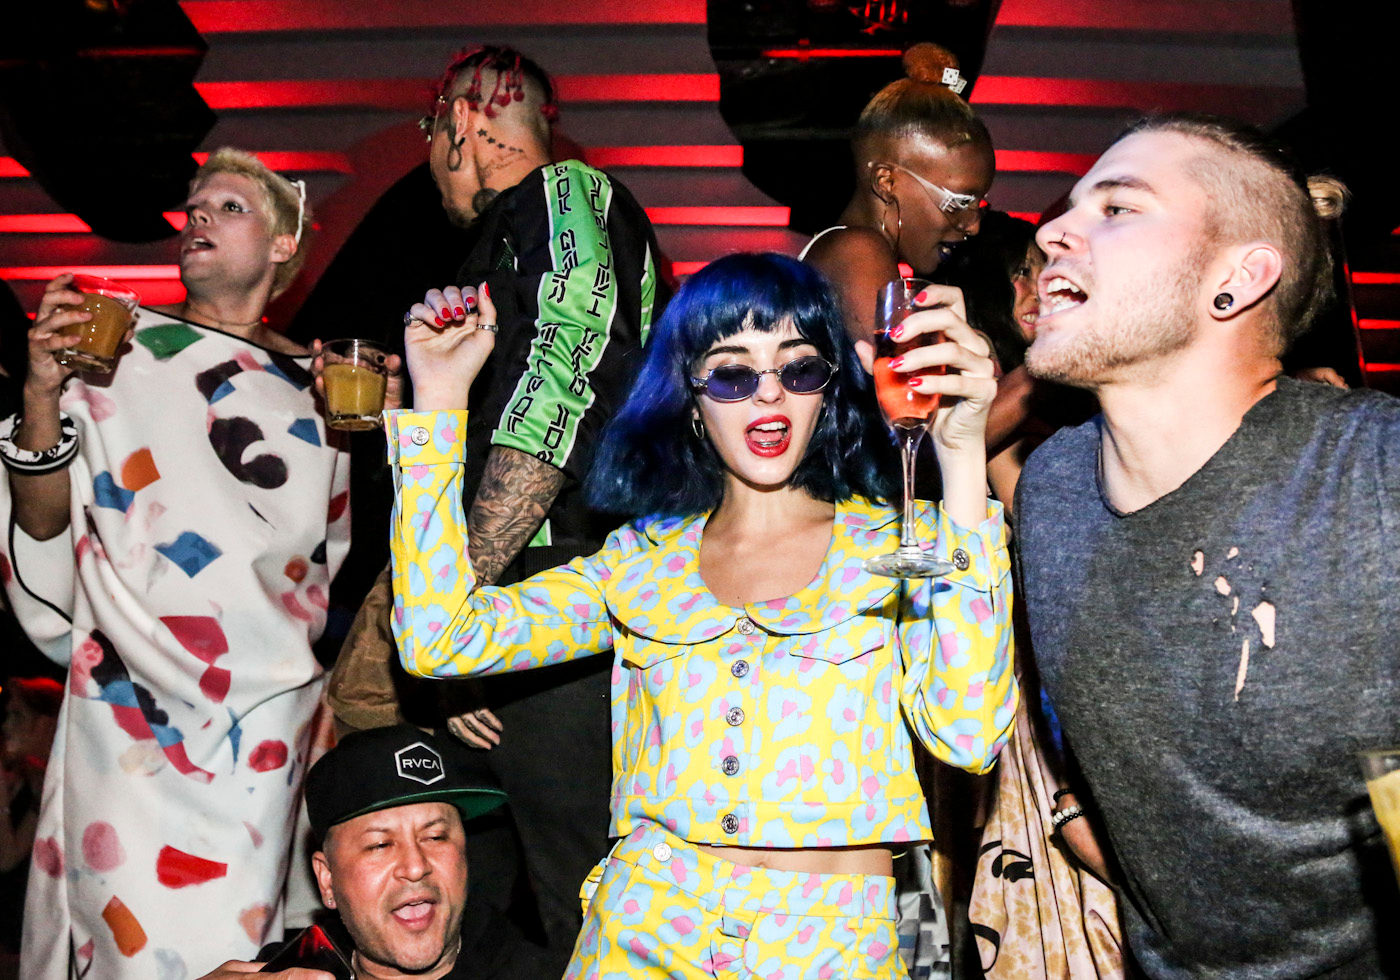 30 Photos That Prove Jeremy Scott Throws The Most Insane Fashion Week Party